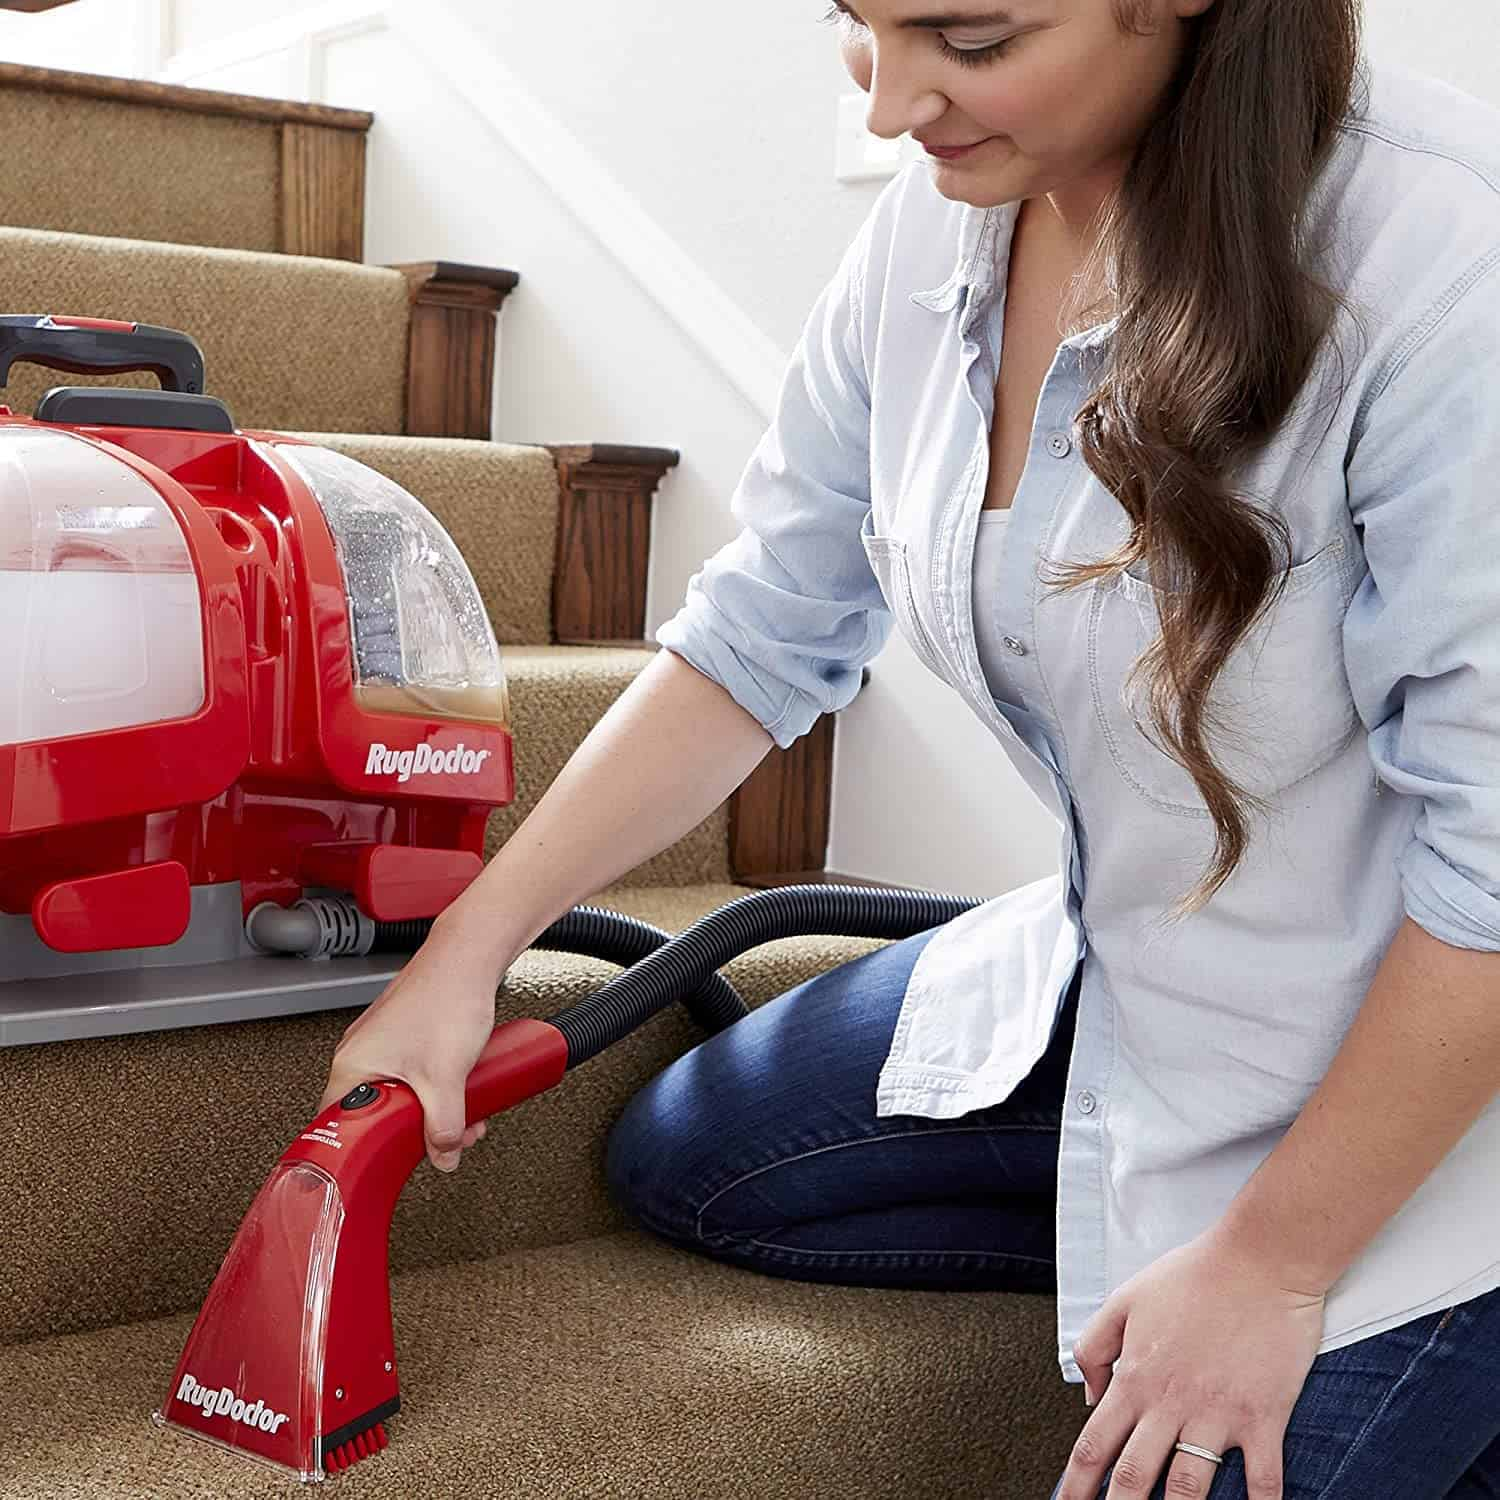 Best small portable carpet cleaner for stairs steps: Rug Doctor